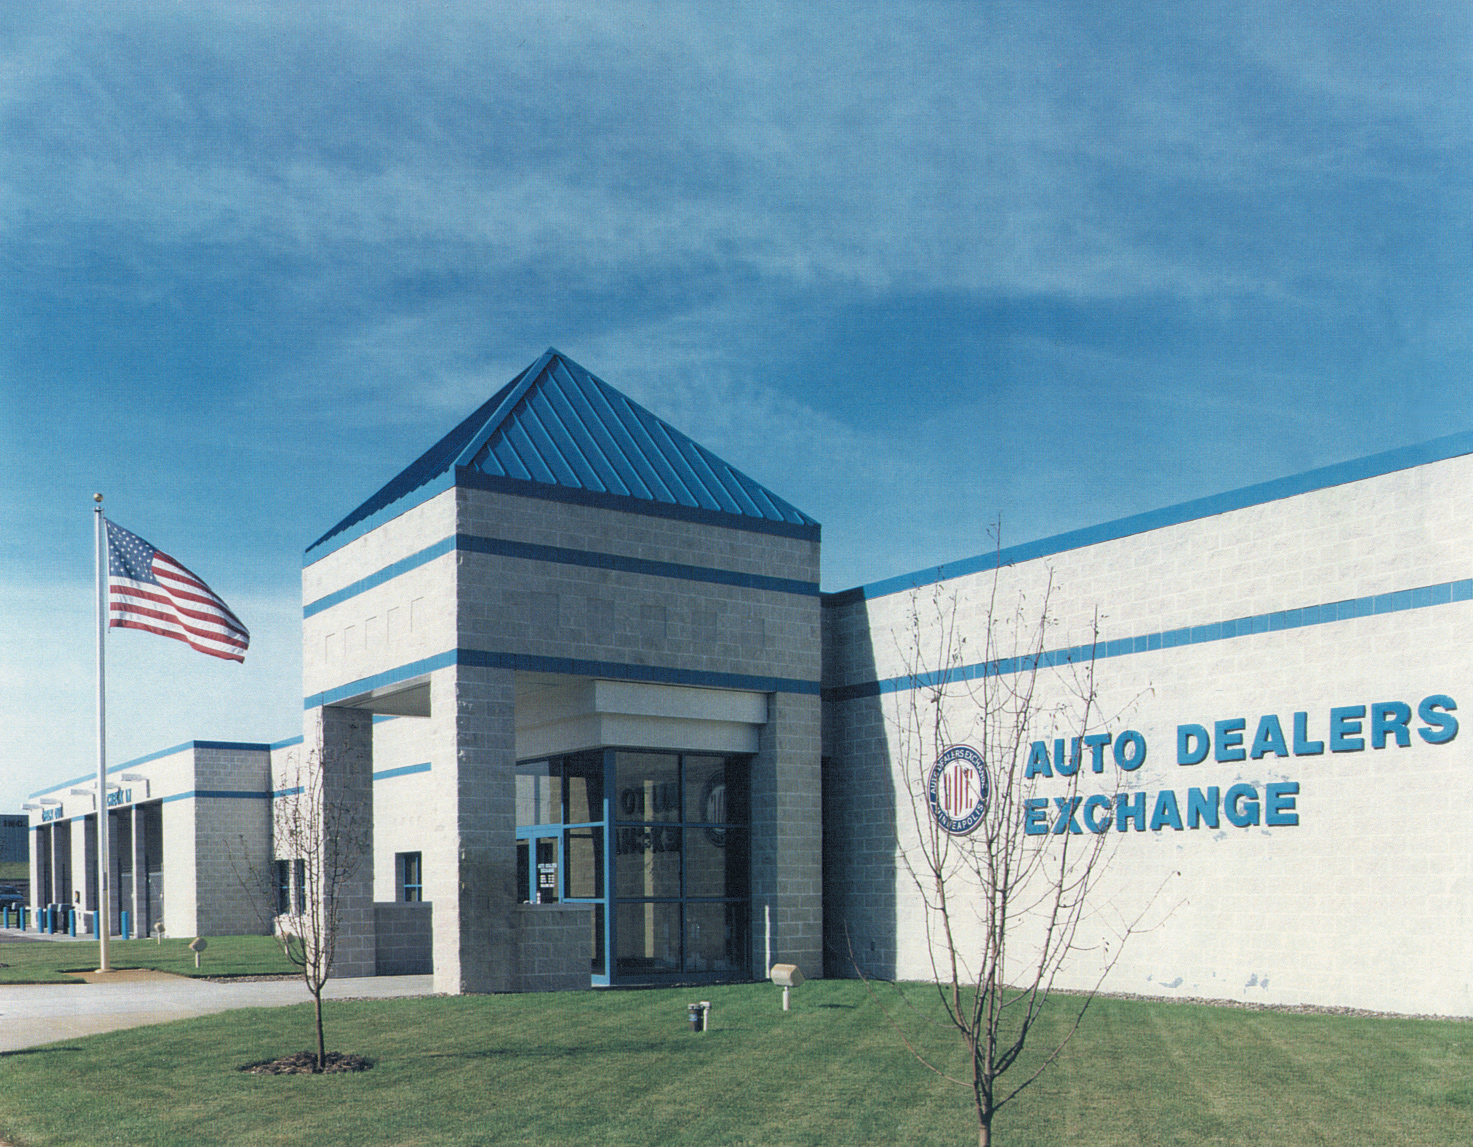 Auto Dealers Exchange